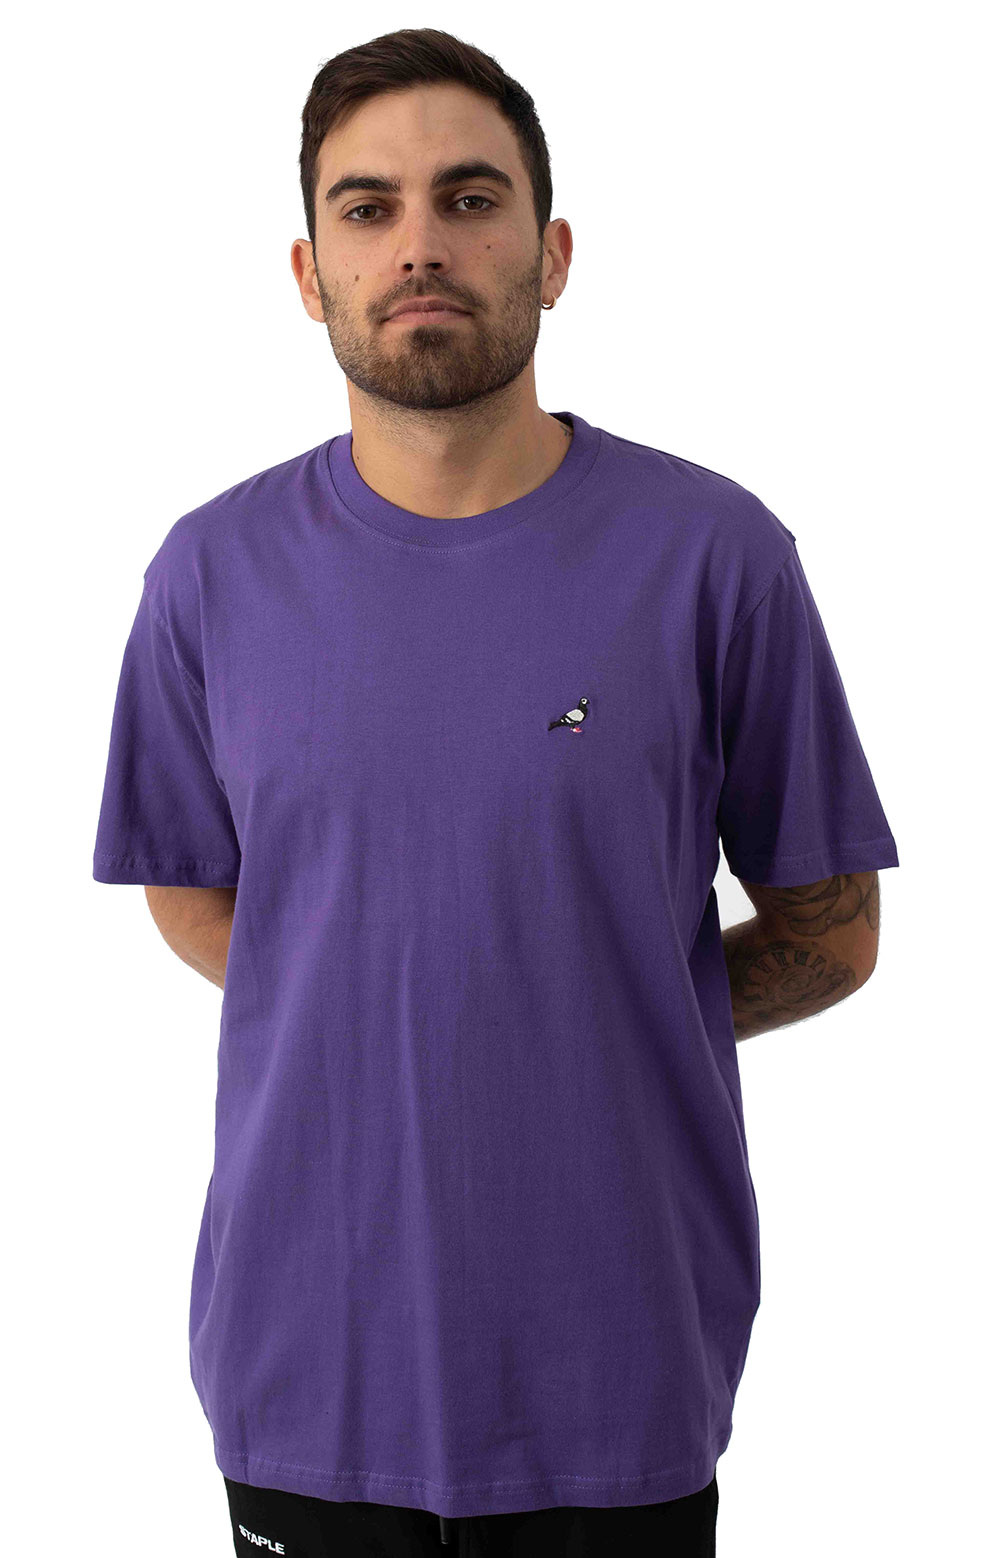 Pigeon Embroidered T-Shirt - Purple